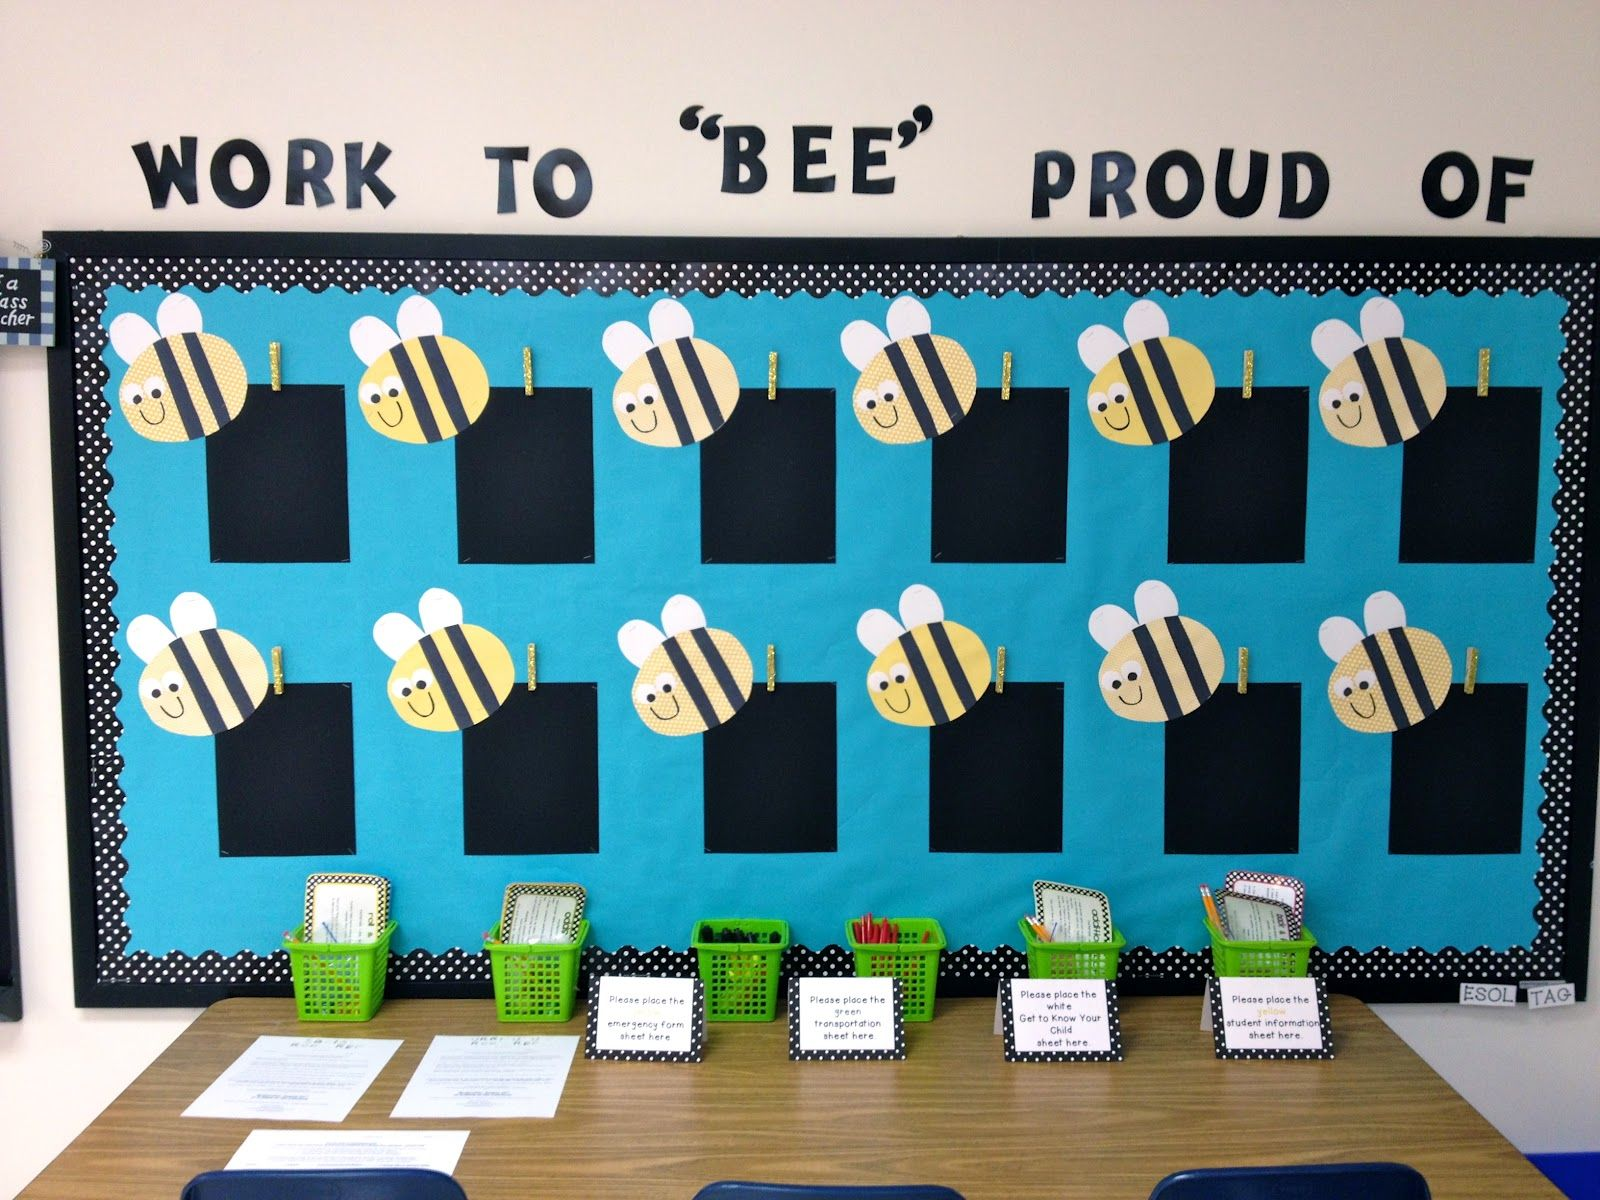 Very Cool Idea Love The Bees From Http Sweethoneyin2nd Teachherpleaseblogspotcom Teacher